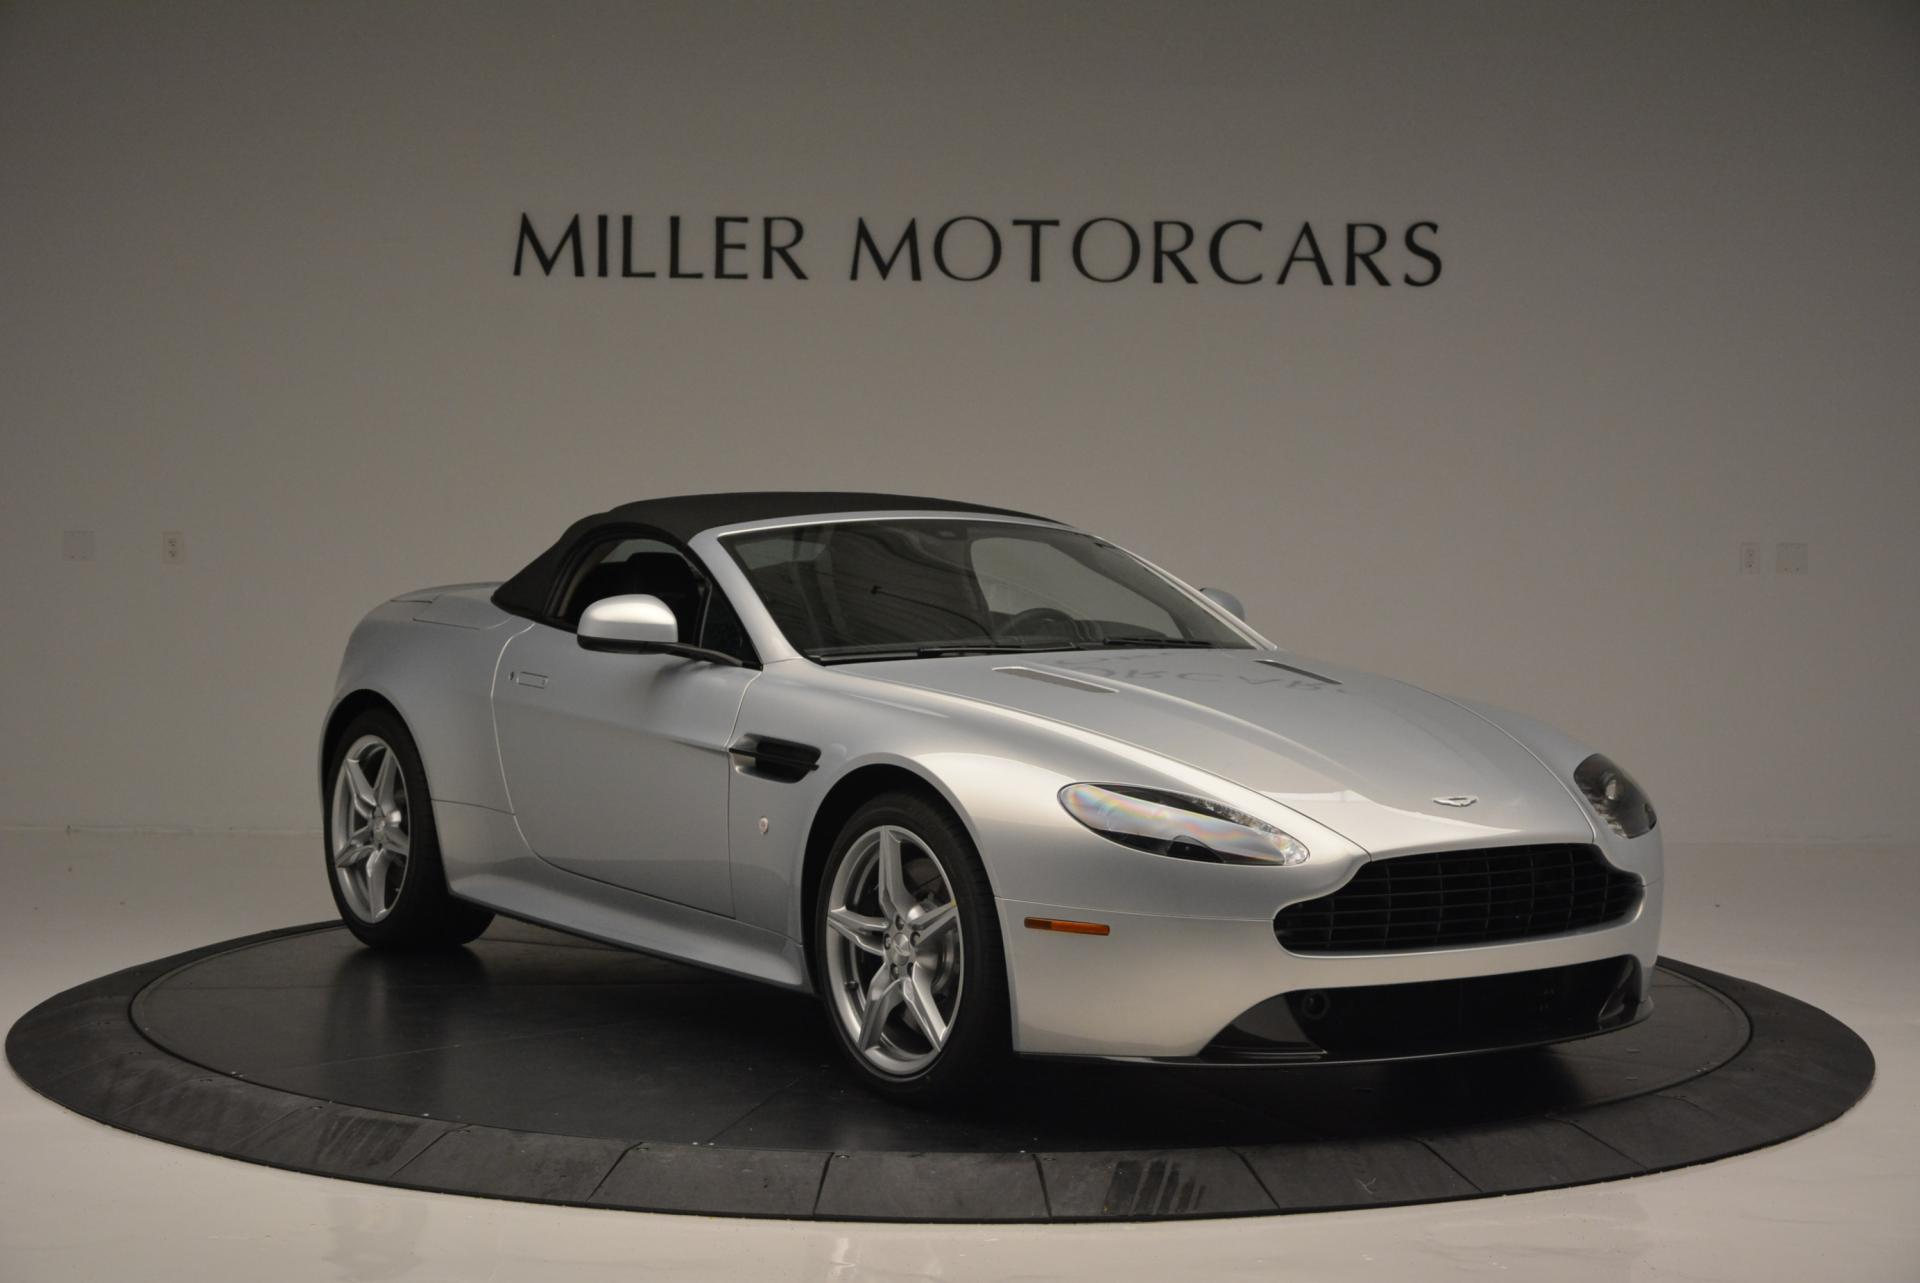 New 2016 Aston Martin V8 Vantage GTS Roadster For Sale In Westport, CT 90_p21